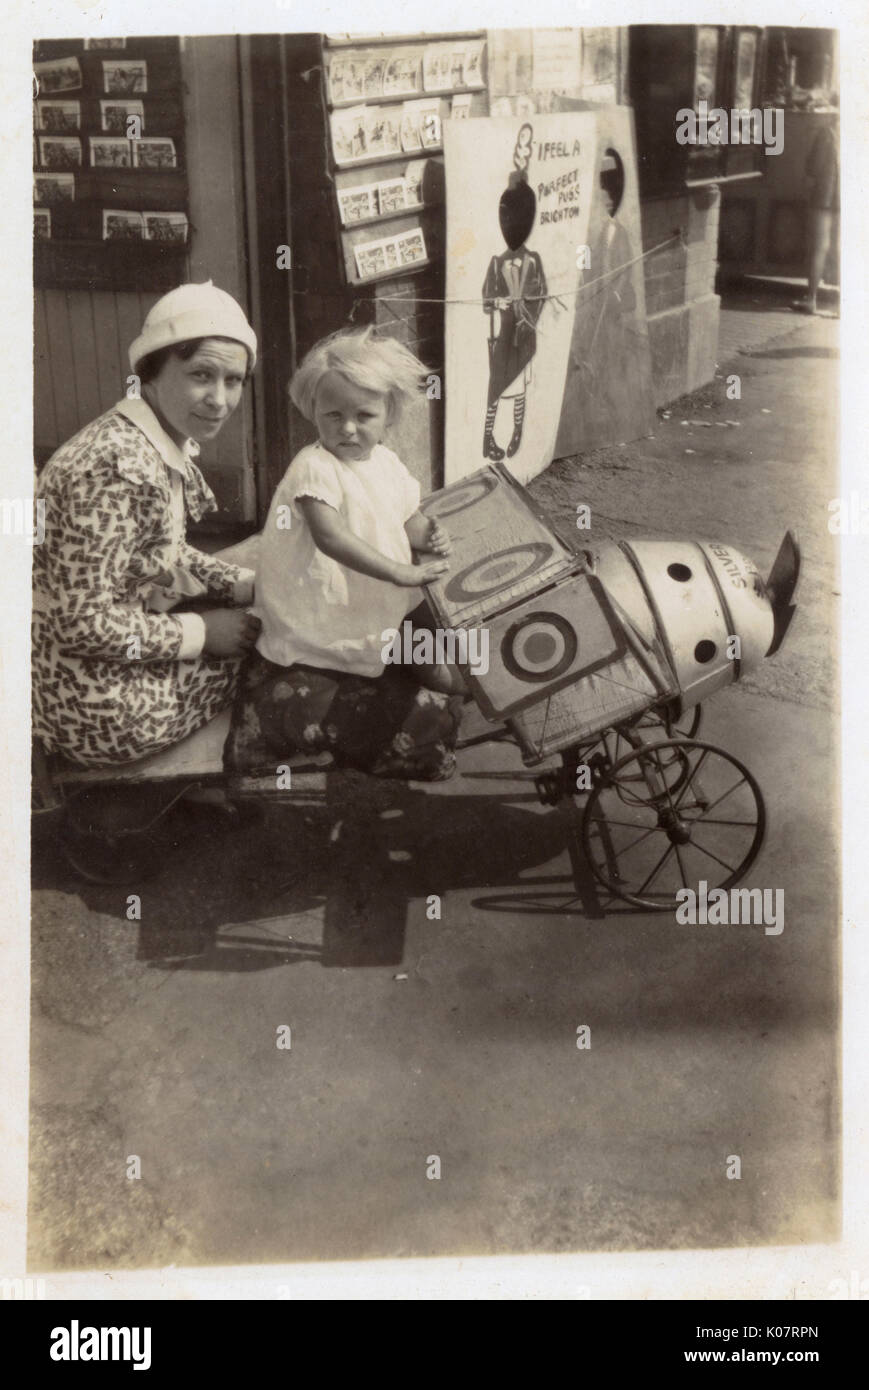 A pin-sharp candid photograph (reproduced on a postcard) showing a Mother and daughter posing in a toy aeroplane (with RAF insignia) outside a photographic shop in Brighton, East Sussex. In the background against the front of the shop are two boards for Children to be photographed behind, with holes cut out for their heads. One bears the slogan: ';I feel a Perfect Puss, Brighton';.     Date: circa 1930 - Stock Image